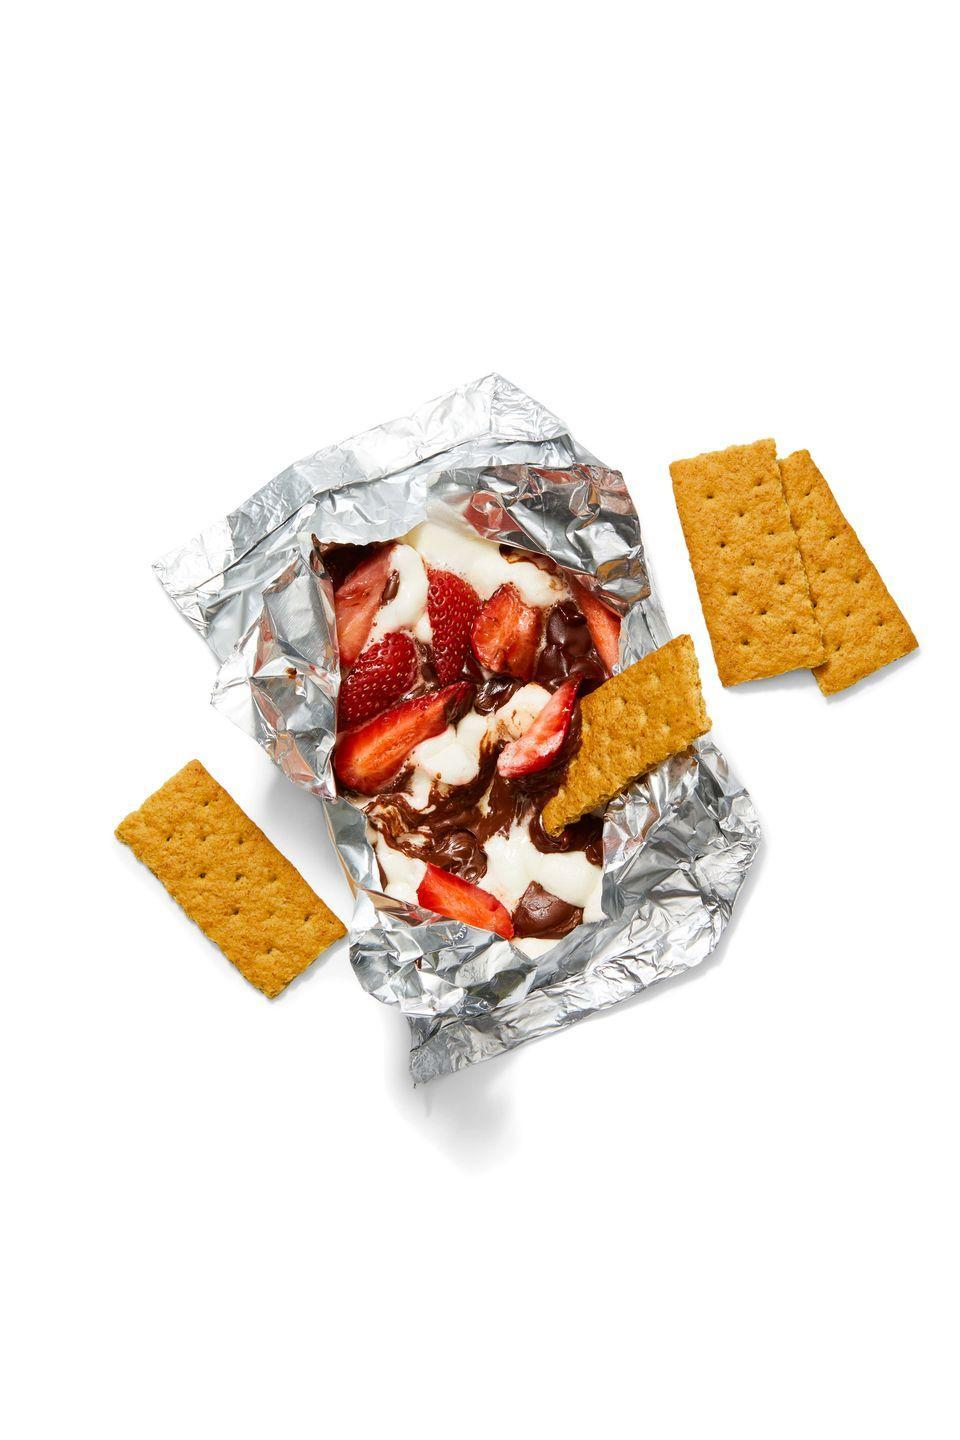 """<p>Grill marshmallows, chocolate chips and strawberries for a gooey, summer-friendly dessert!</p><p><em><a href=""""https://www.goodhousekeeping.com/food-recipes/a27544231/smores-dip-foil-packs-recipe/"""" rel=""""nofollow noopener"""" target=""""_blank"""" data-ylk=""""slk:Get the recipe for S'mores Dip Foil Packs »"""" class=""""link rapid-noclick-resp"""">Get the recipe for S'mores Dip Foil Packs »</a></em></p>"""